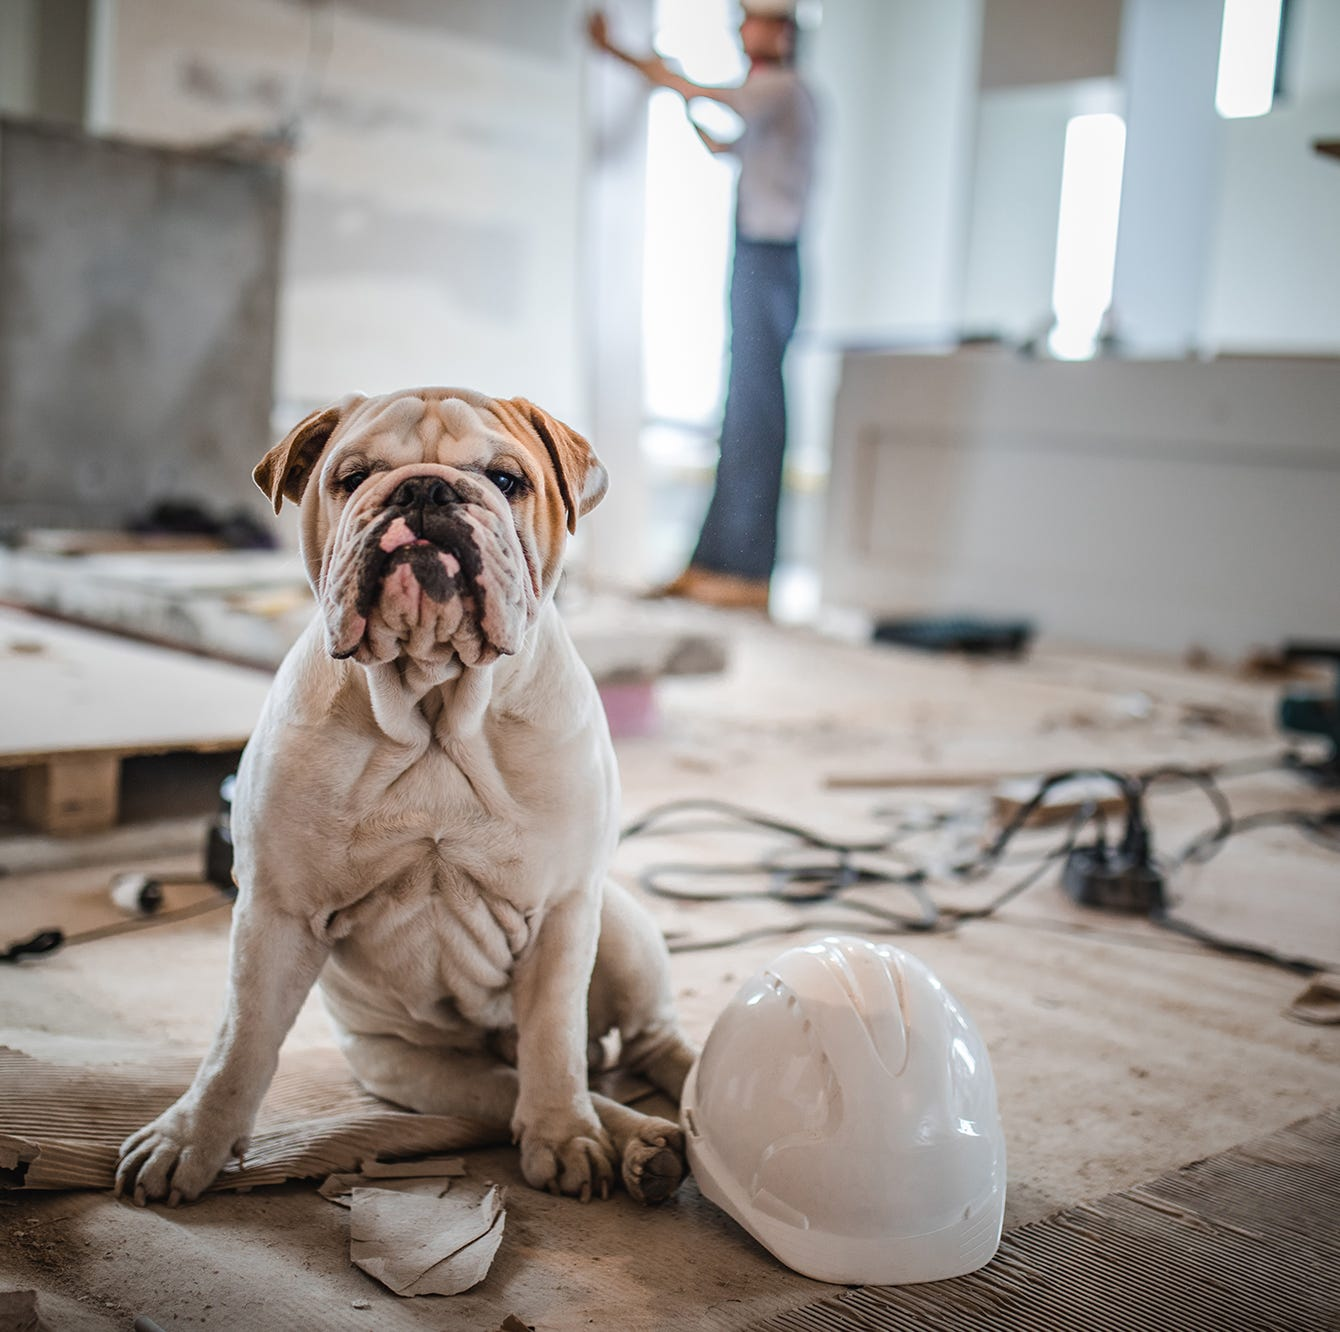 Pet Safety During a Home Remodel